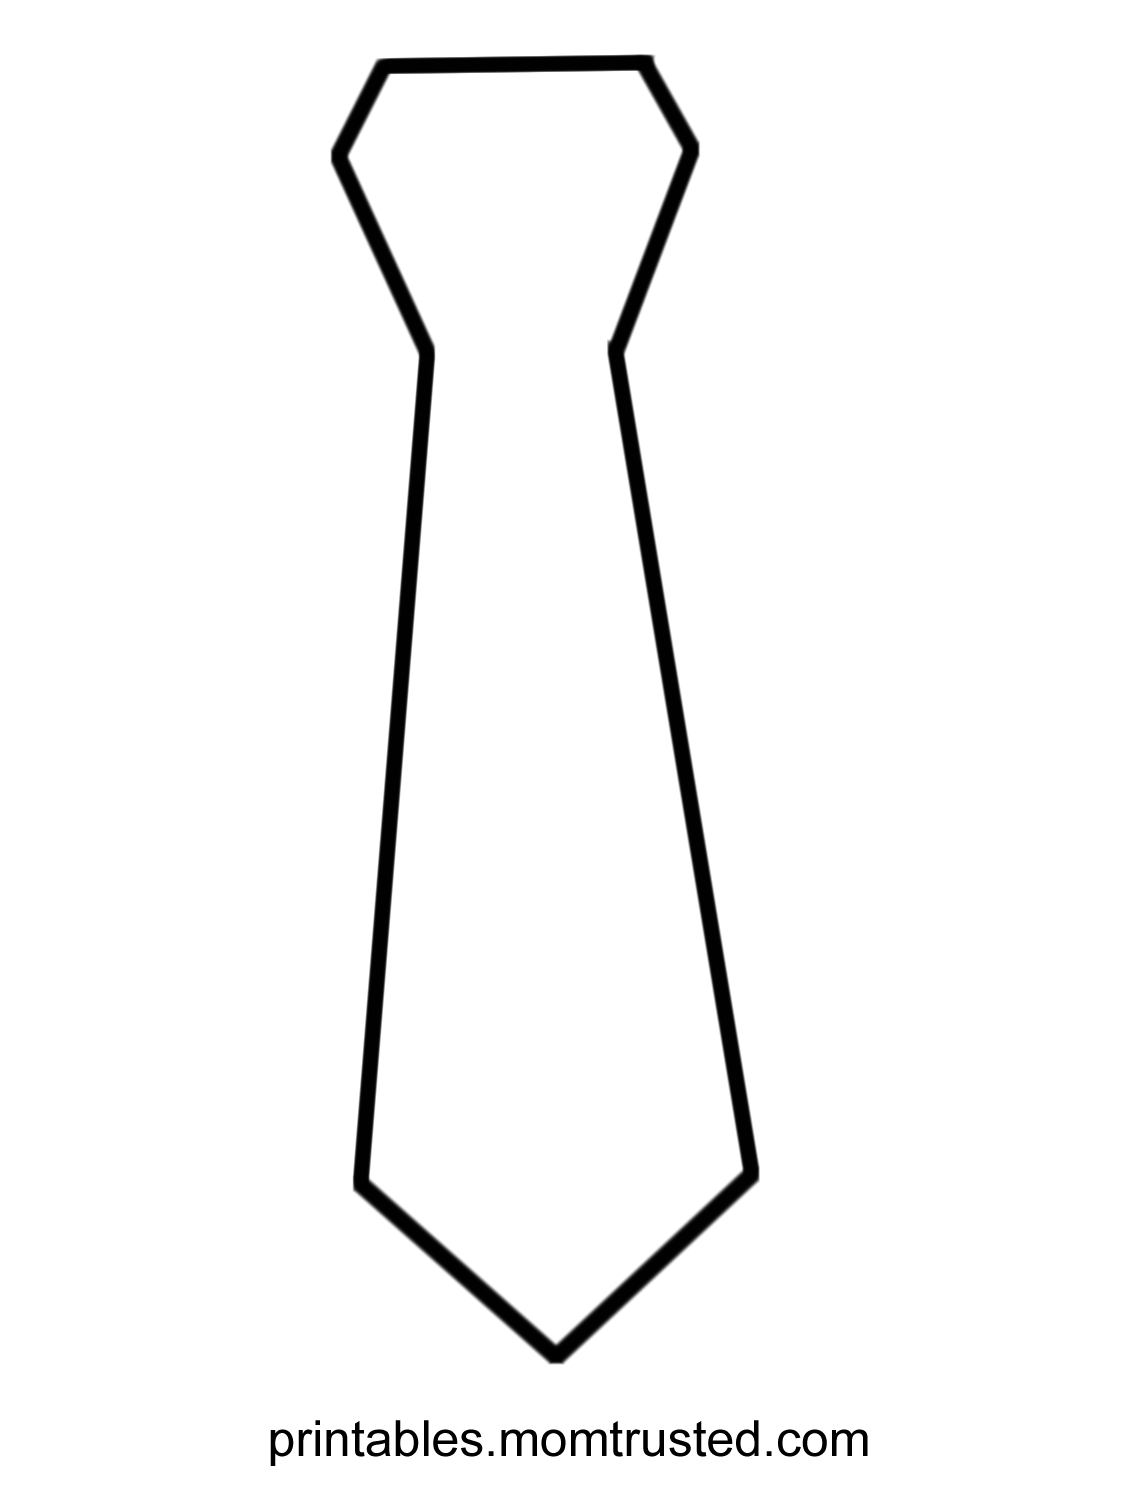 Coloring Contest Decorate A Tie For Father S Day